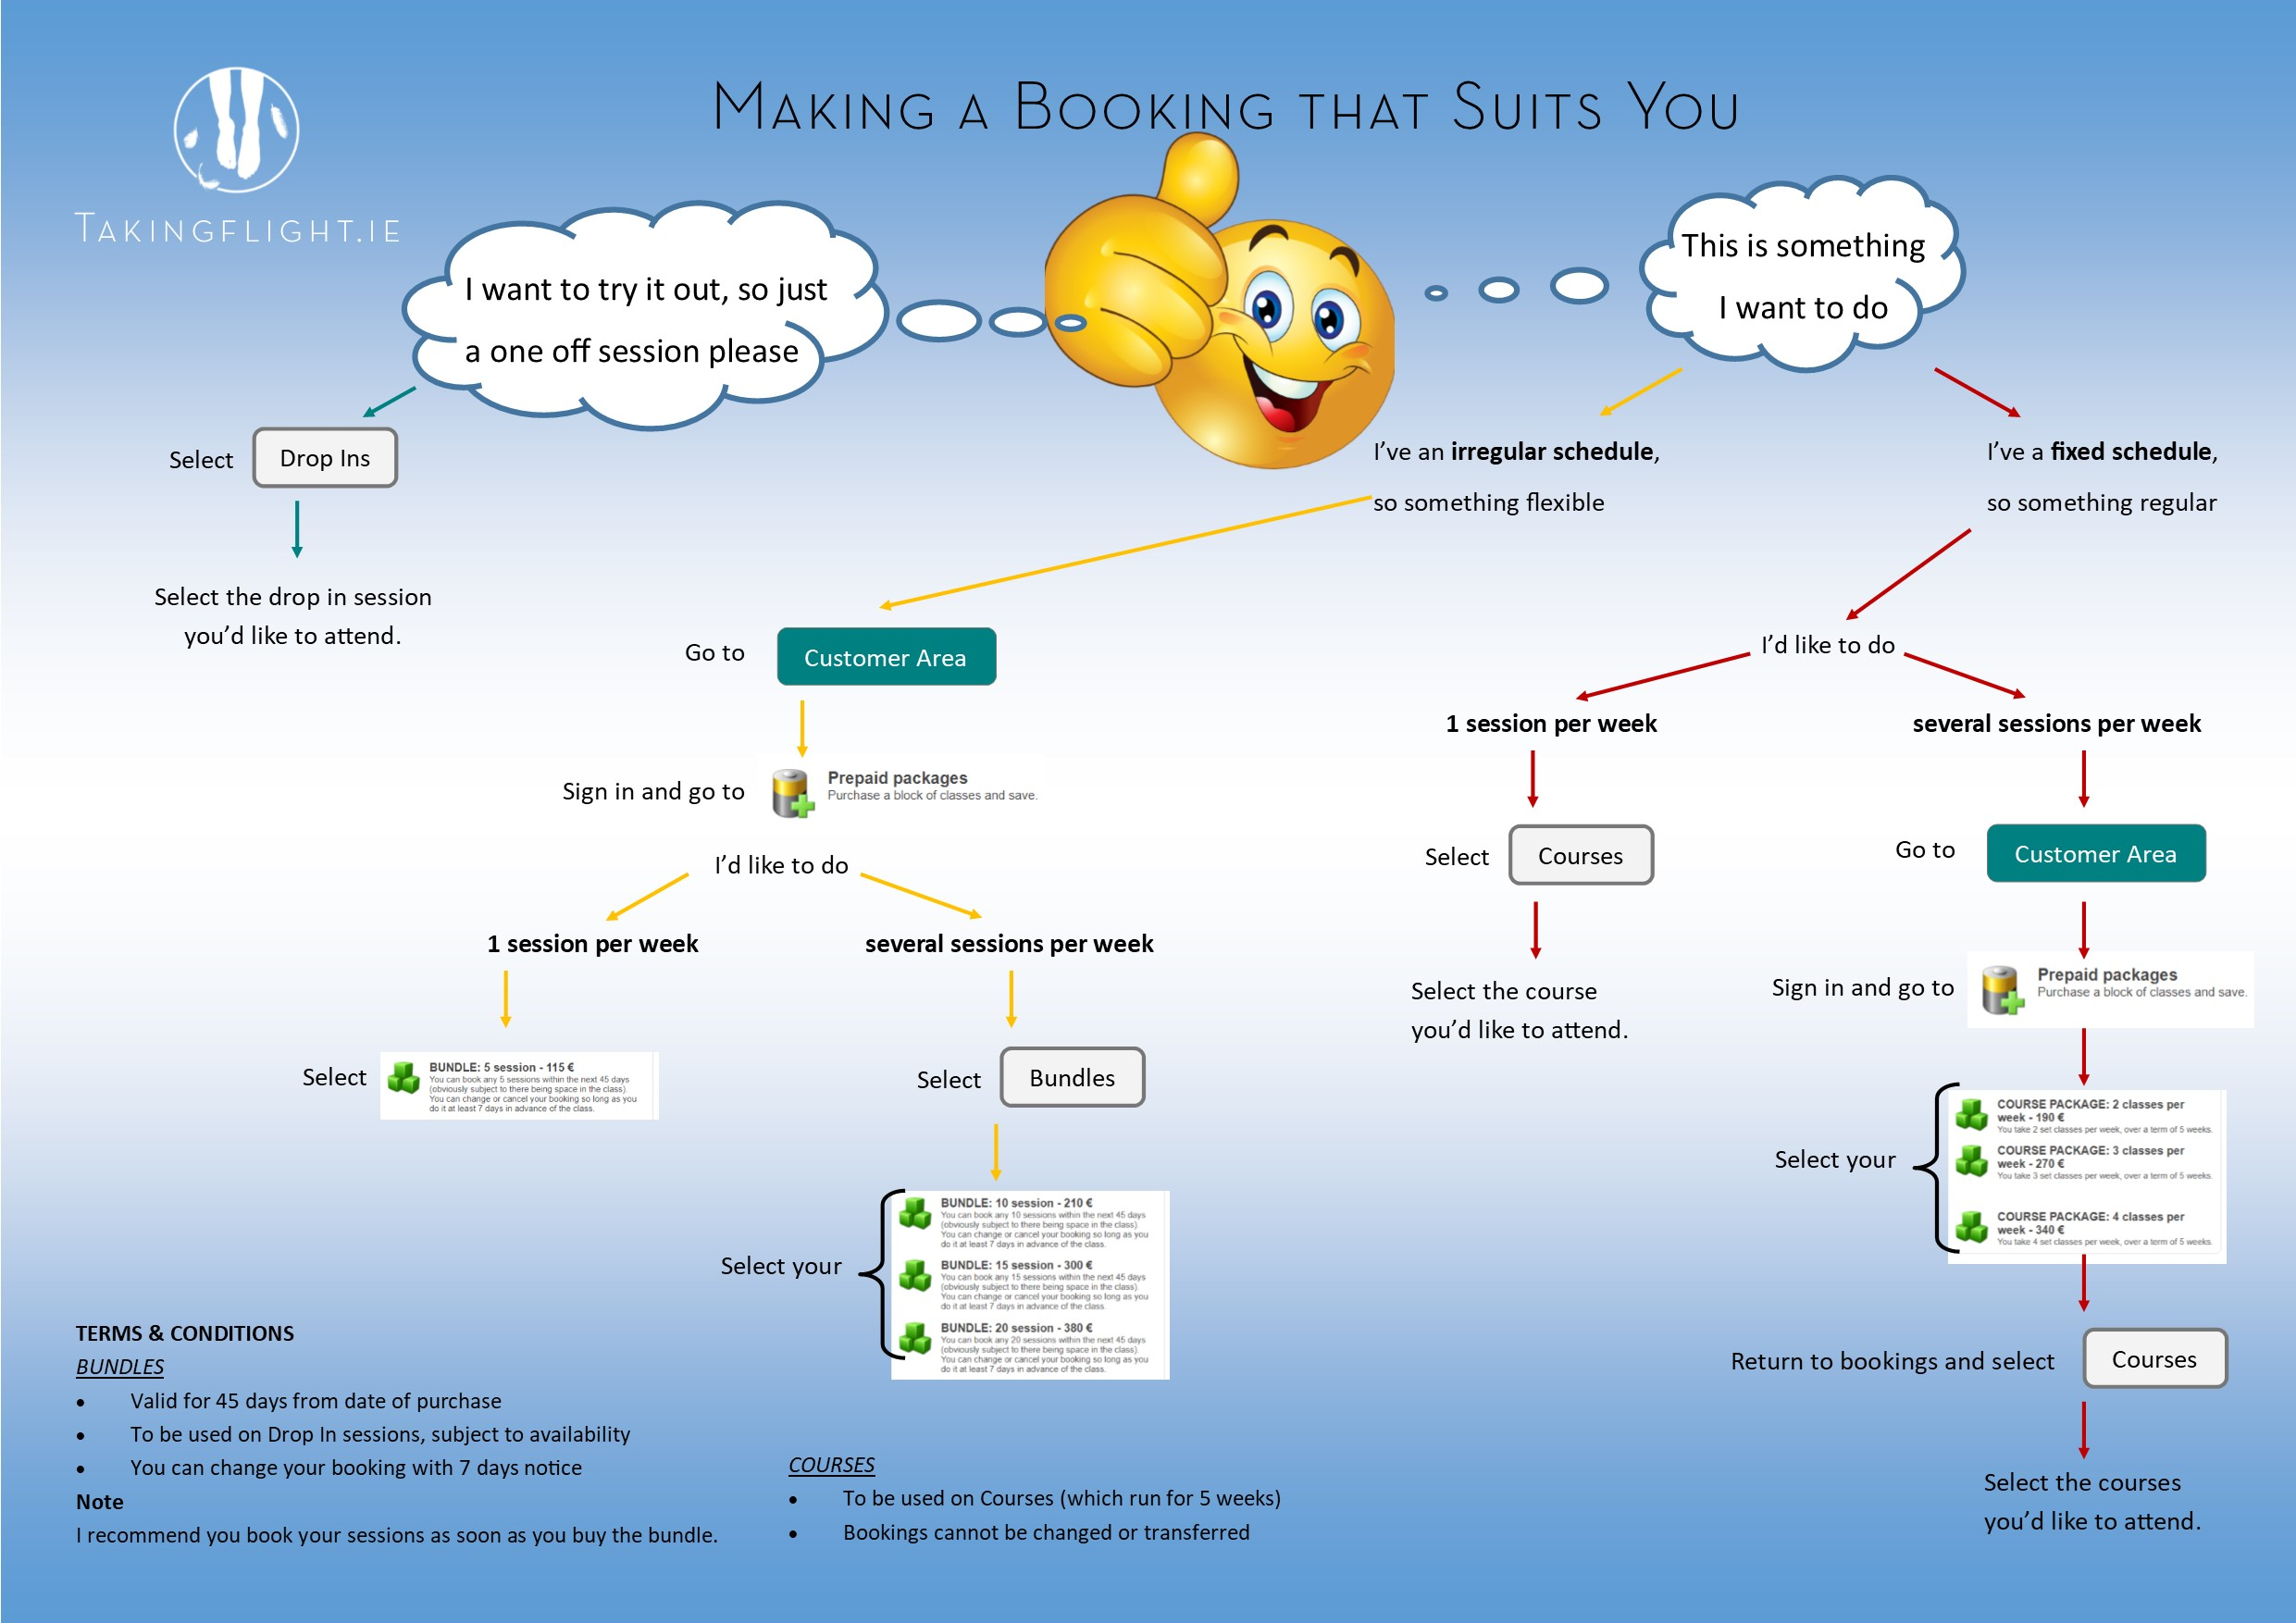 A flow chart of how to book at Taking Flight